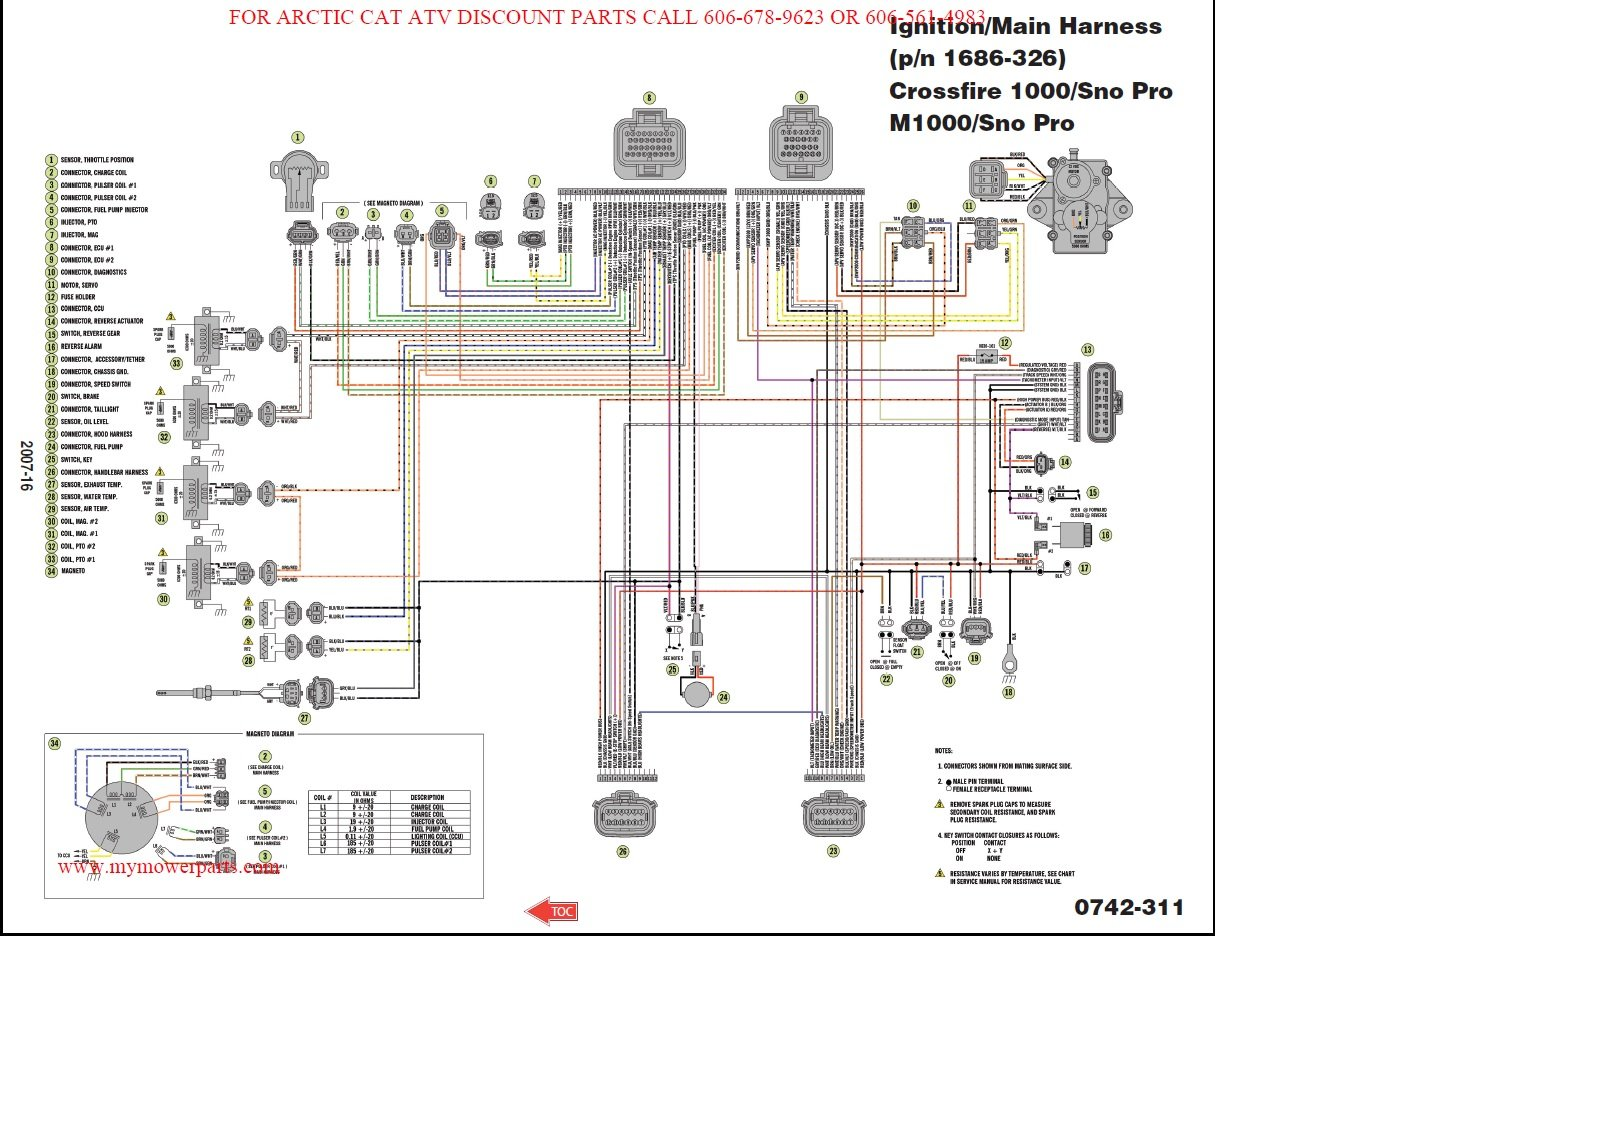 Cat Wiring Diagrams Diagram Schematics 5 Cat5 Artcic 2007 Sno Pro